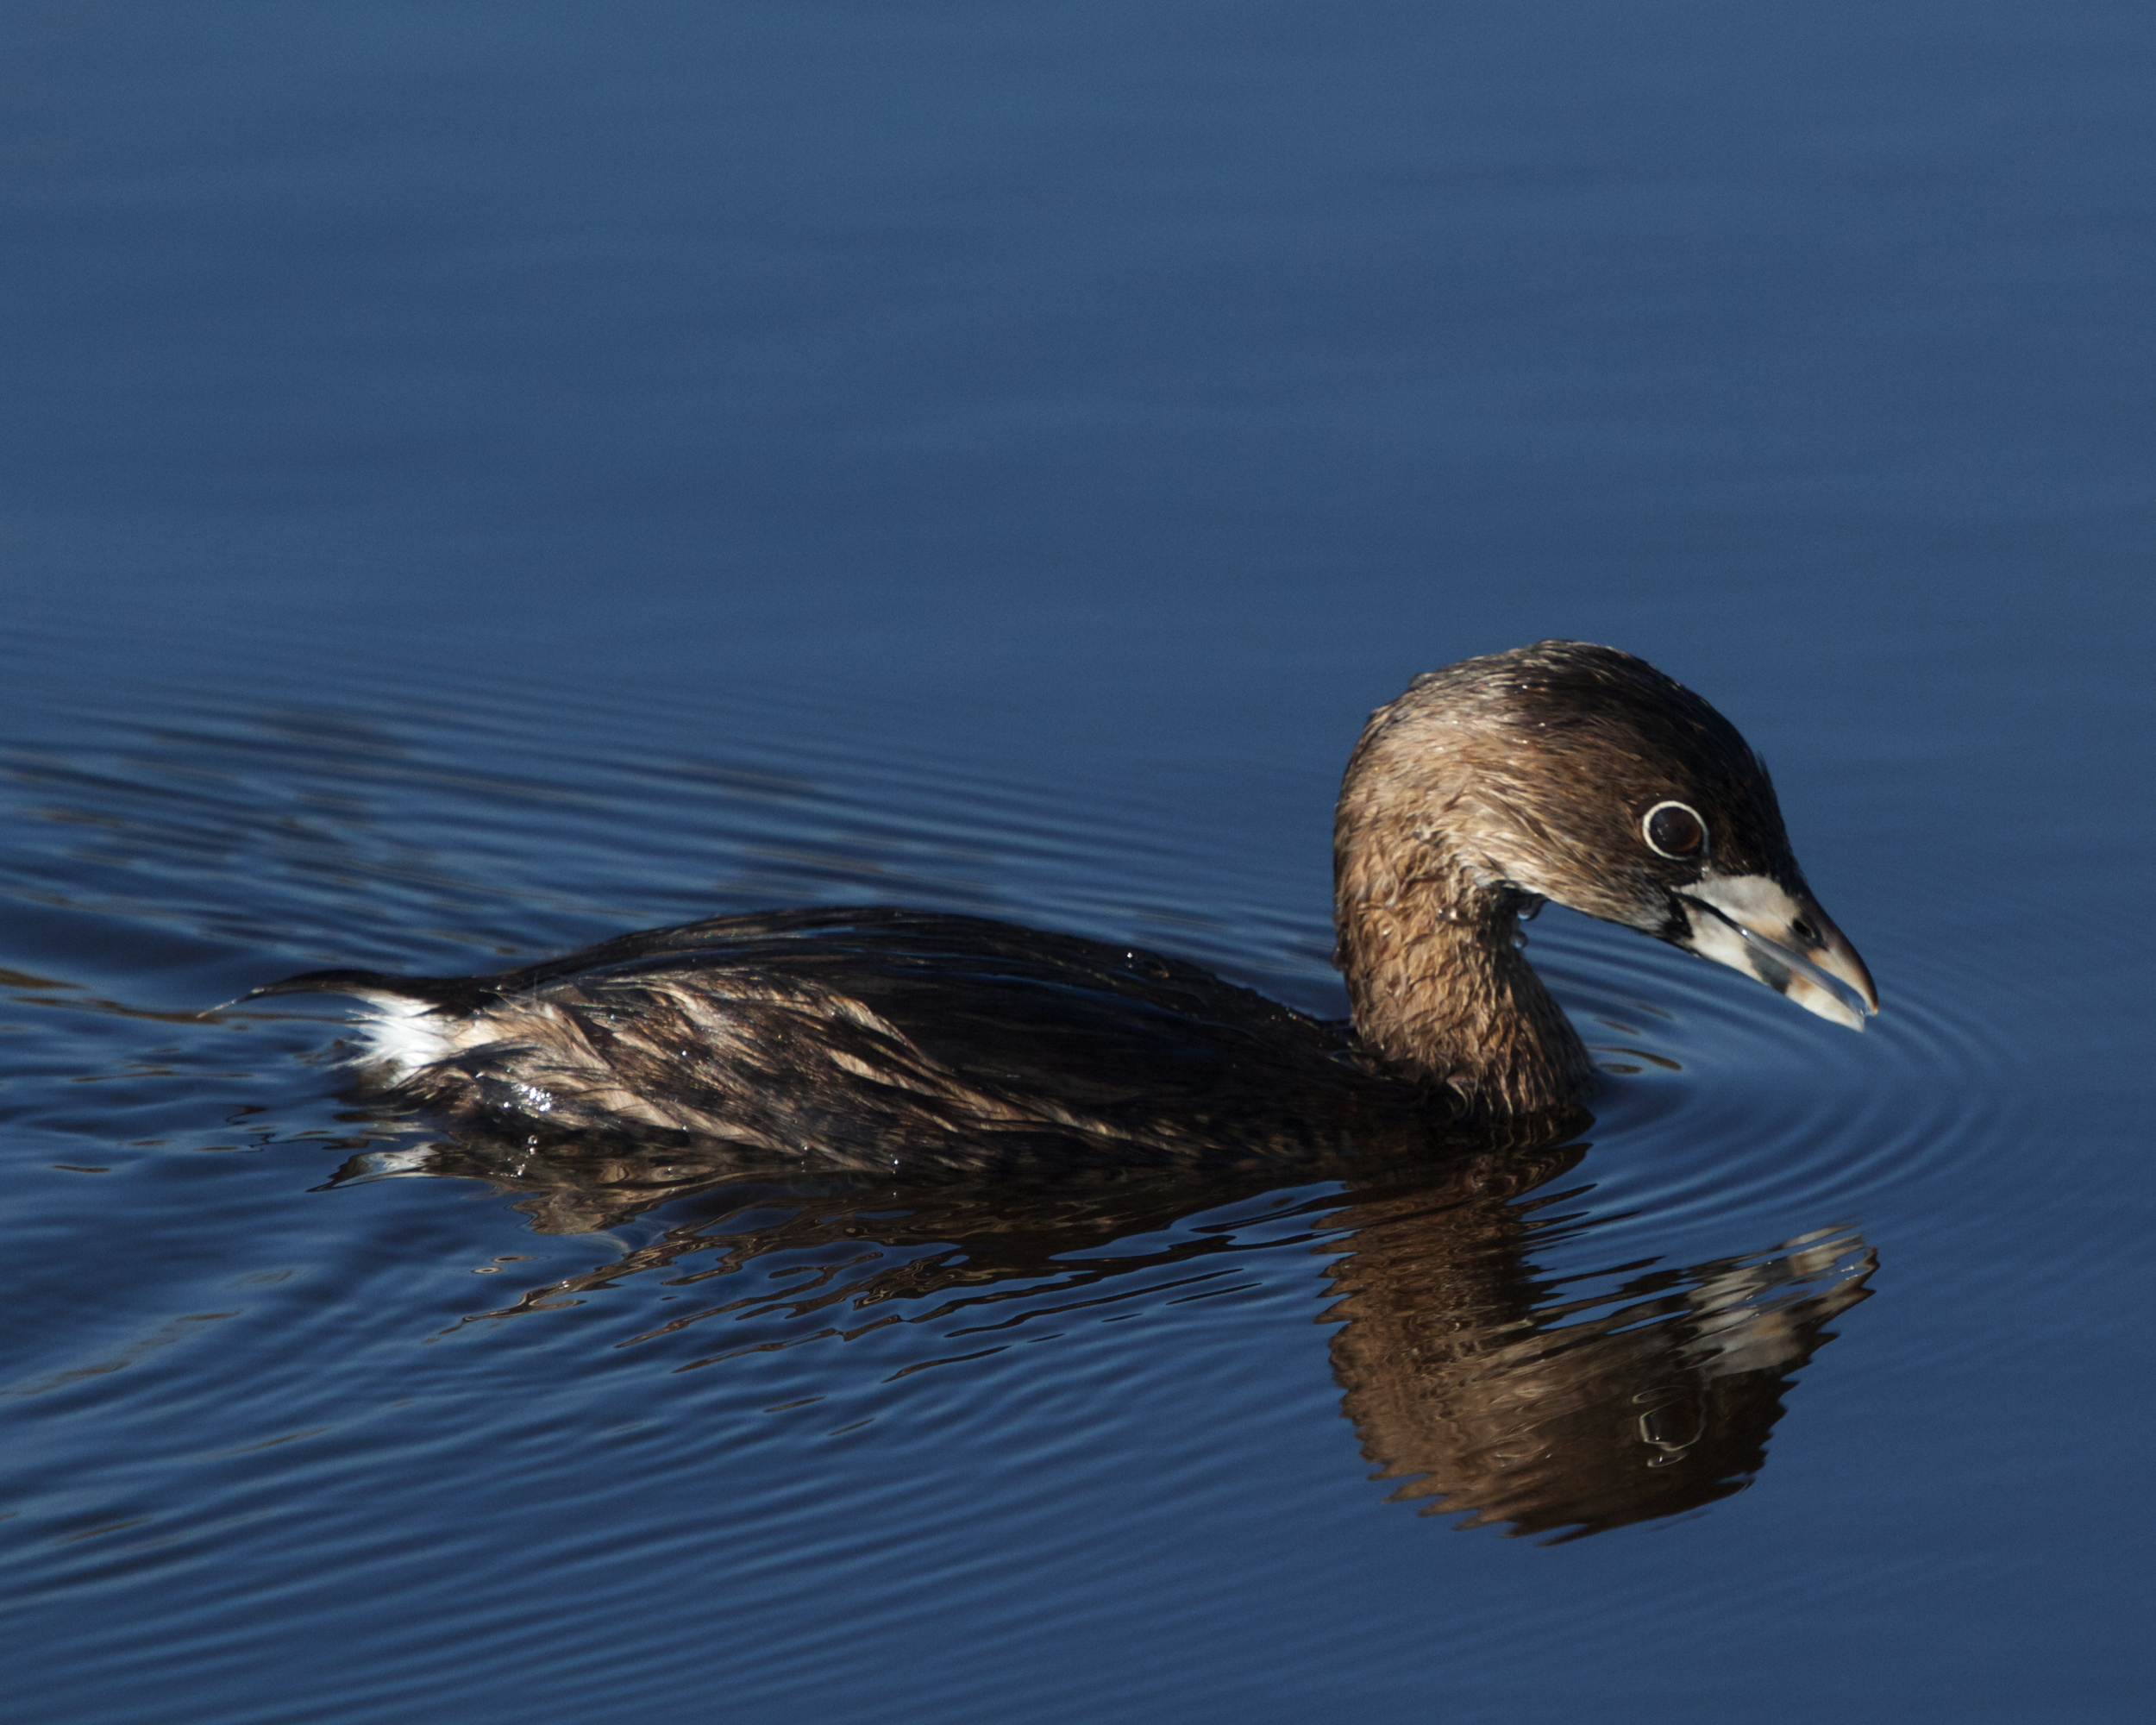 The Pied Billed Grebe says lemme see!